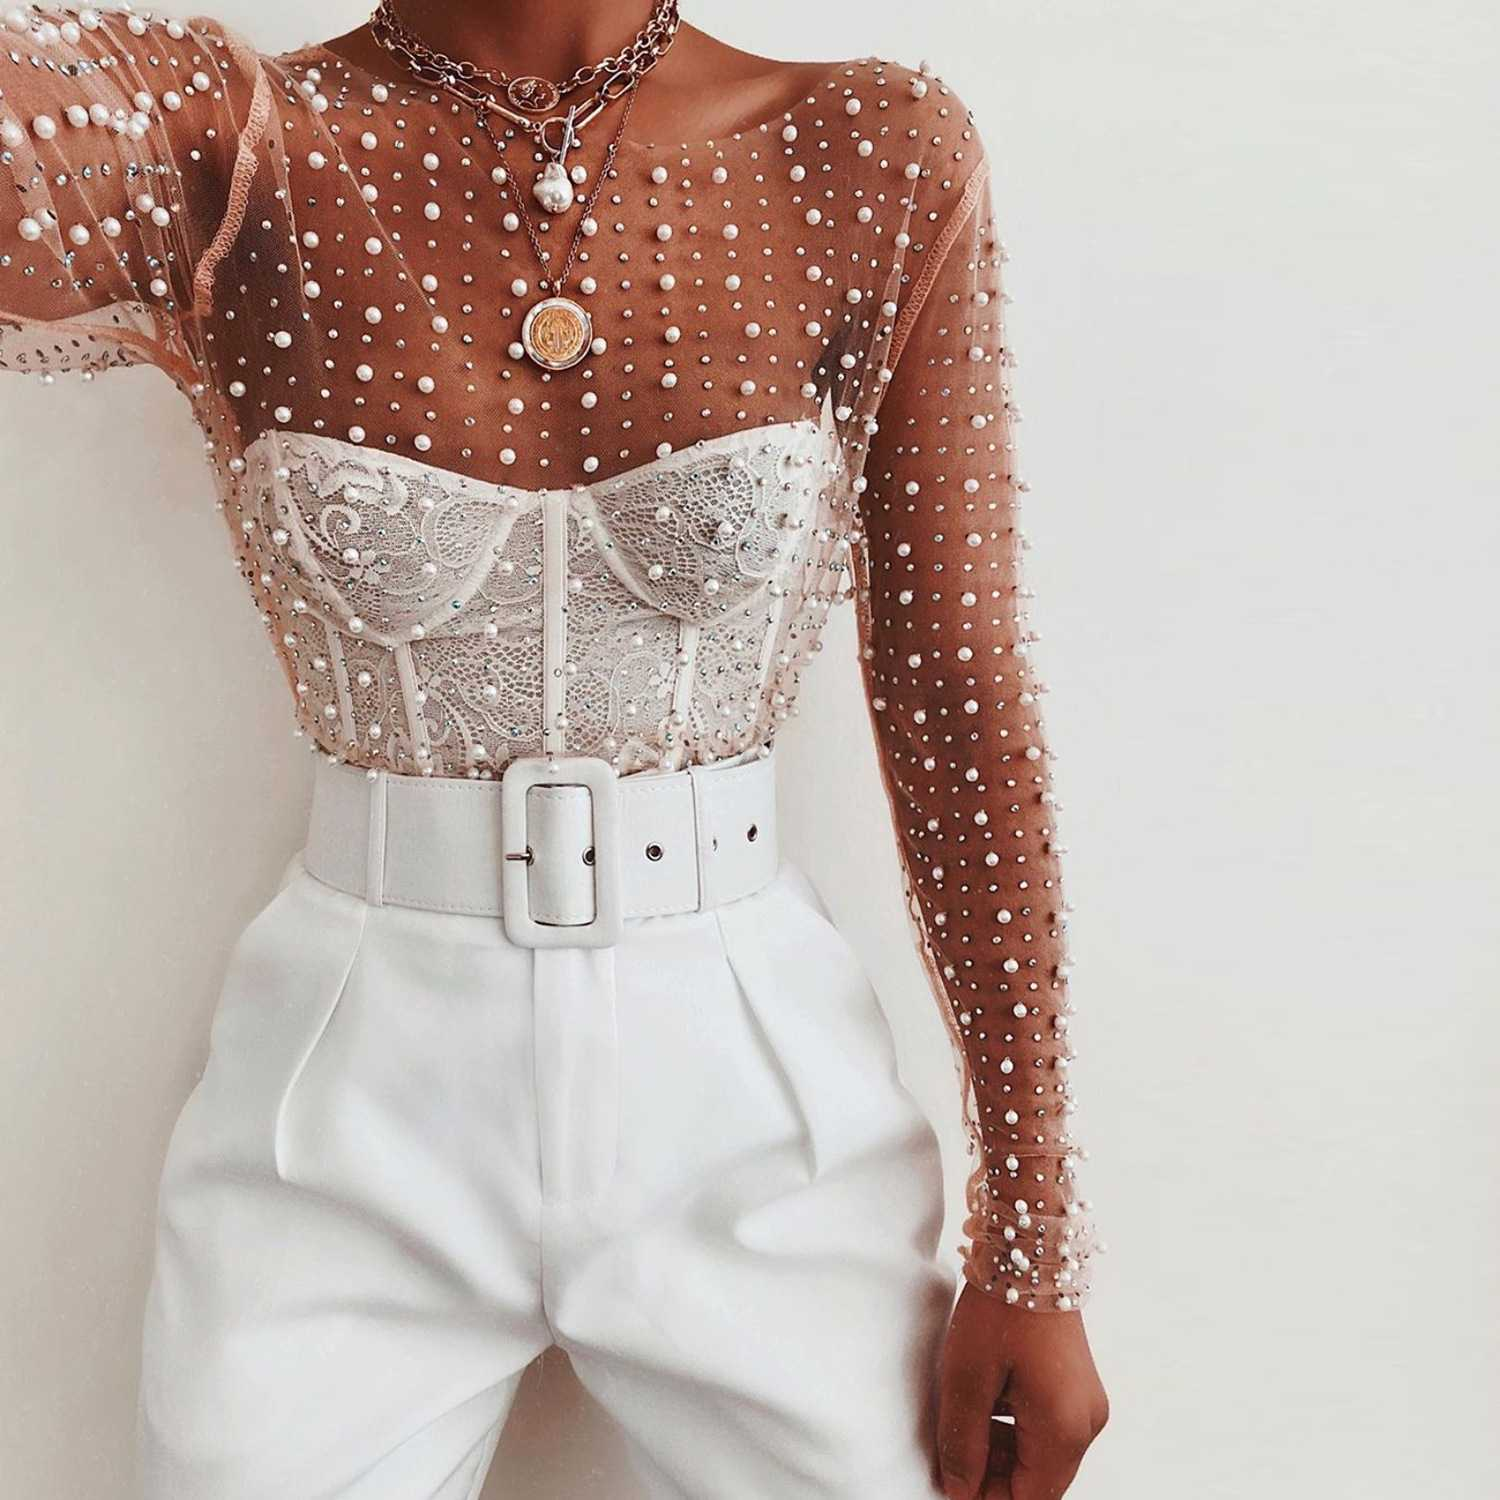 Luxury Pearls And Rhinestone Studded Embellished Mesh Shirts